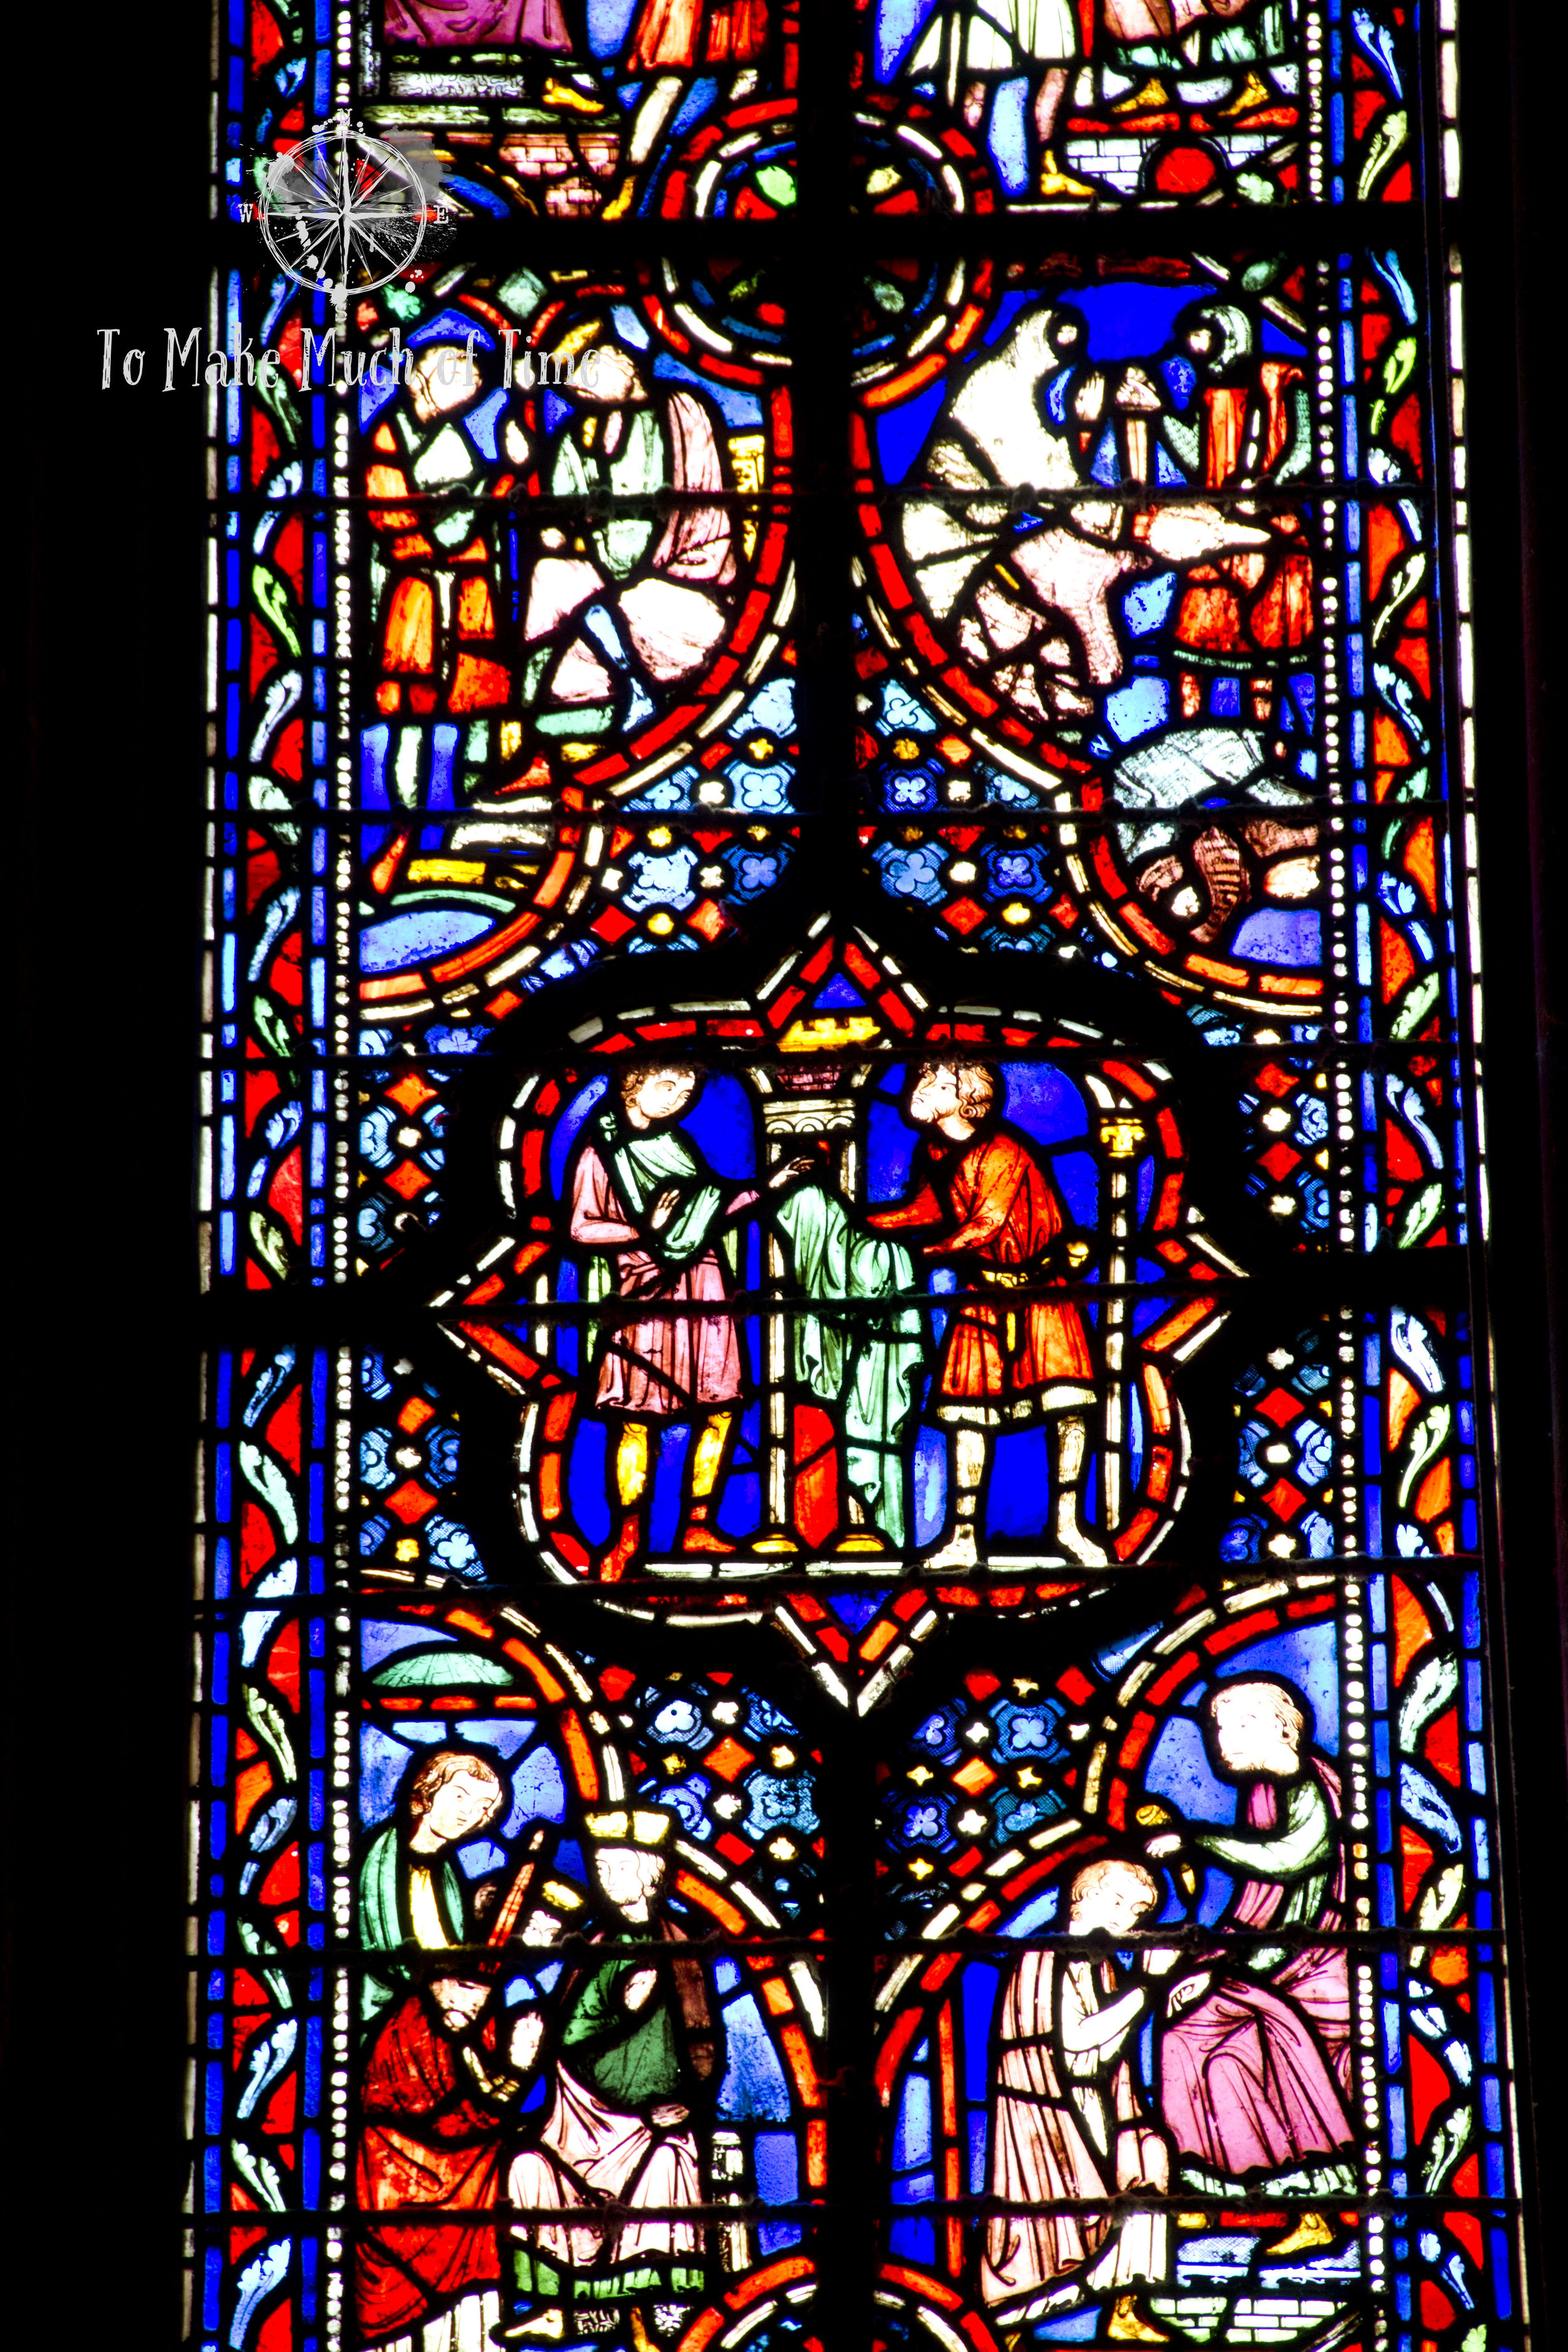 Zoomed in photo of a segment of the stained glass panels seen in the next image.